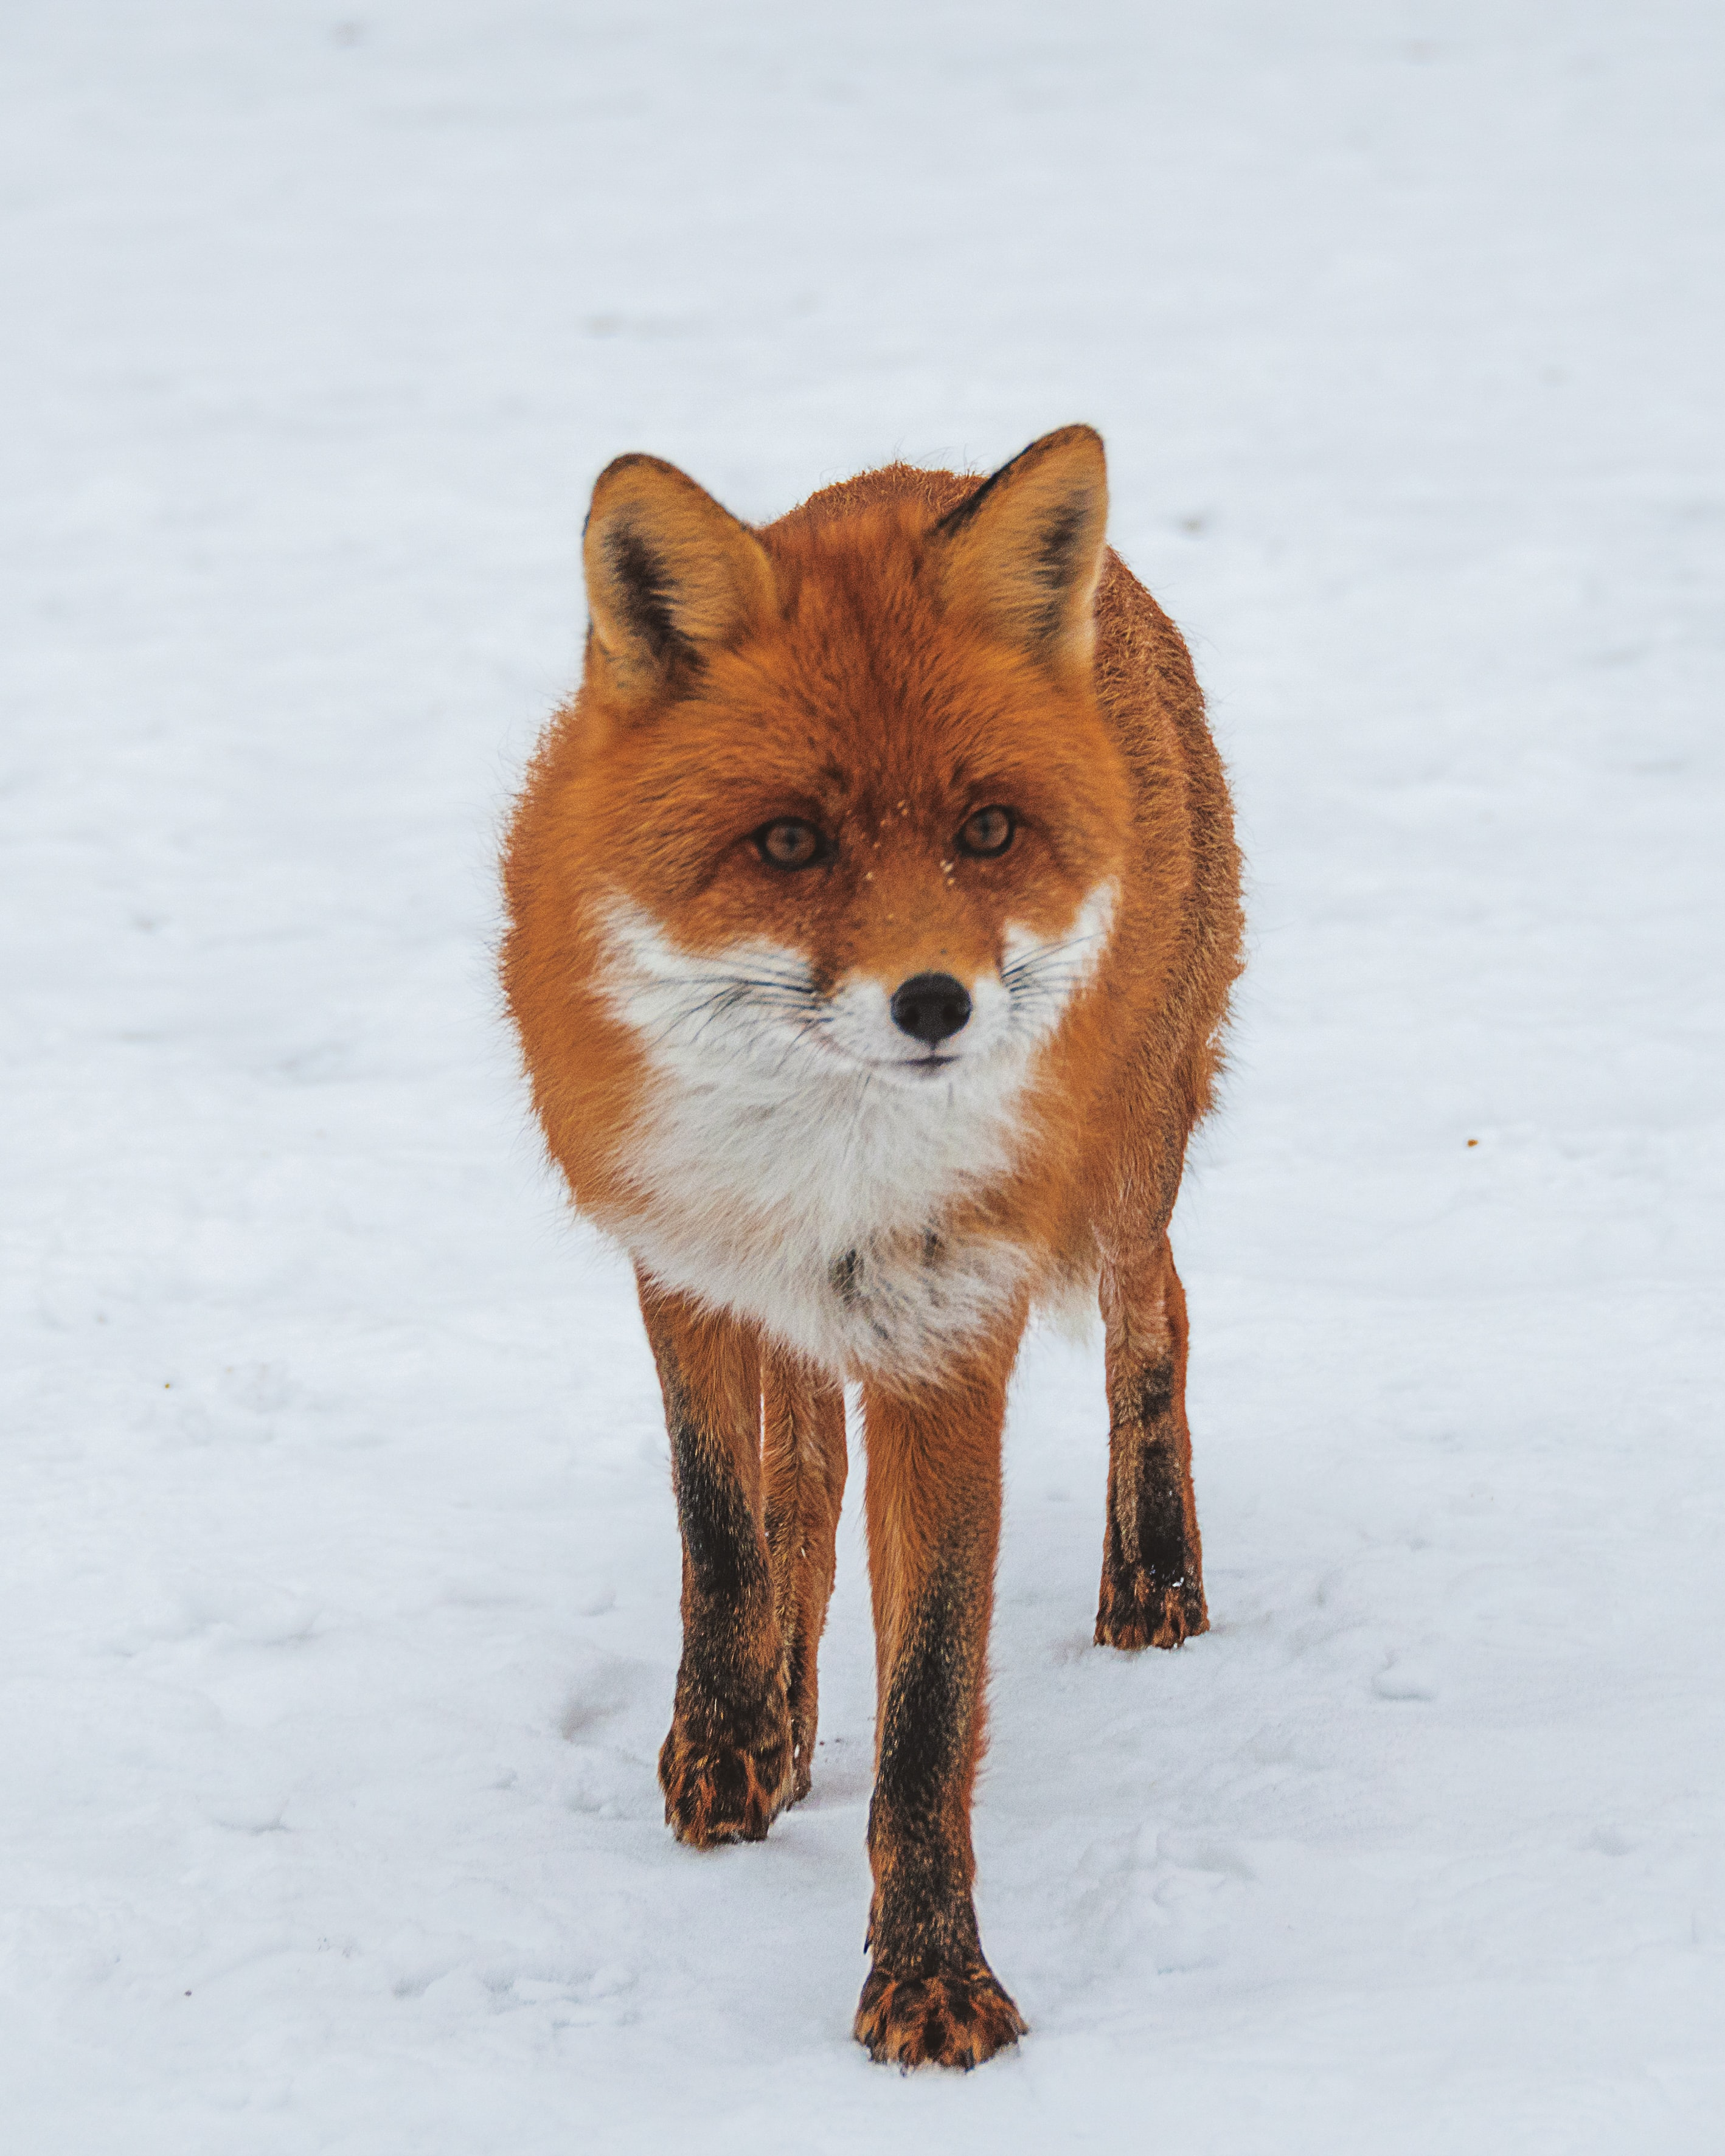 fox walking on snow field